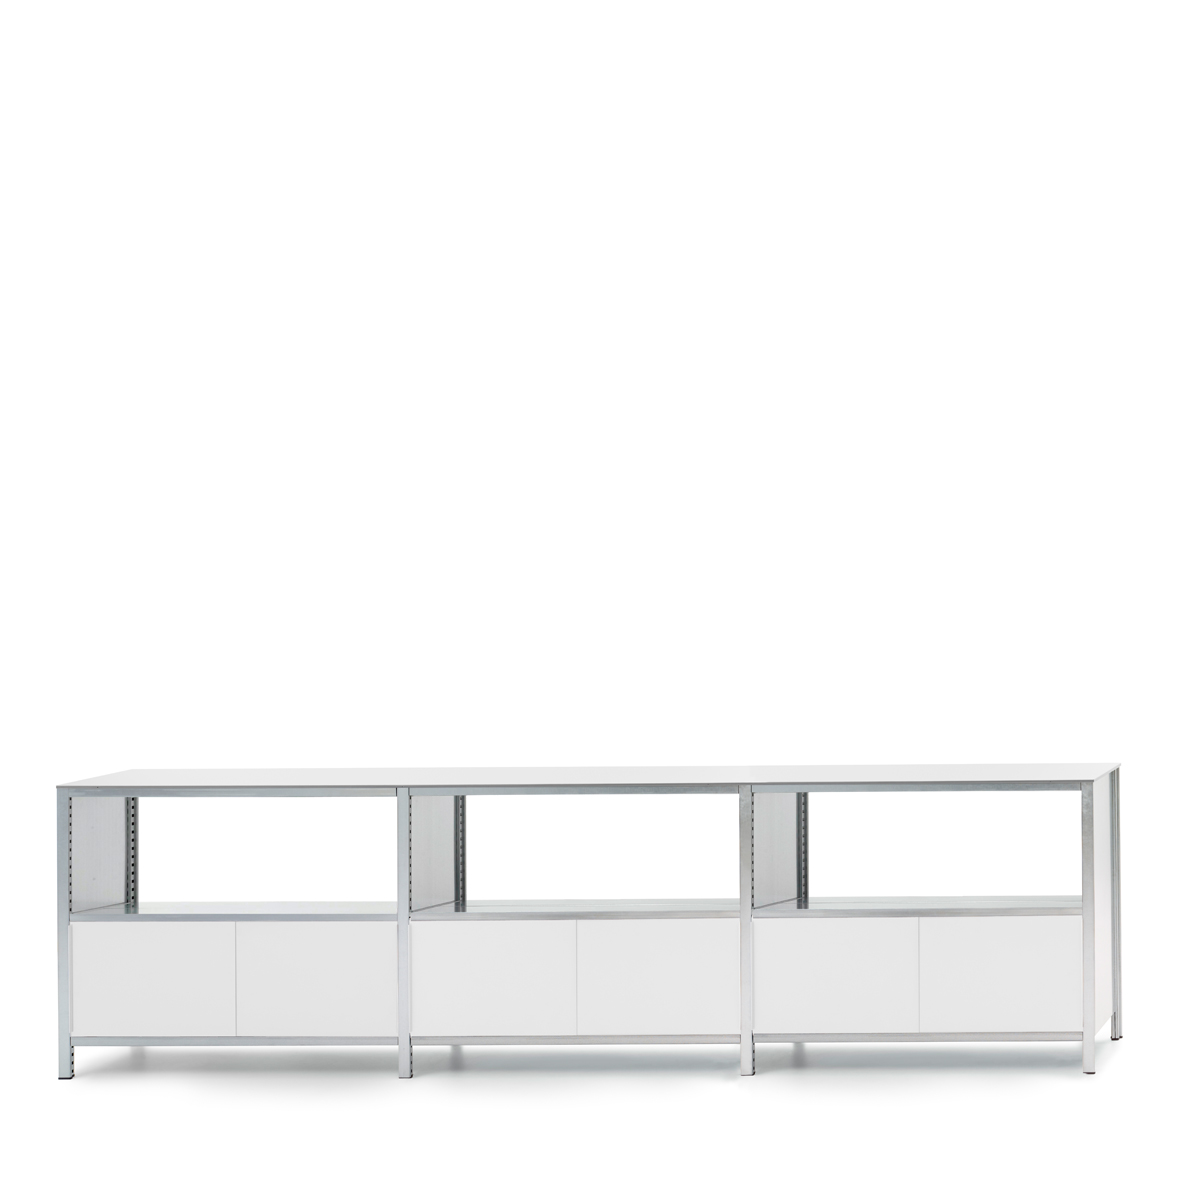 Mf System Langes Sideboard Mit Offnung Bestswiss